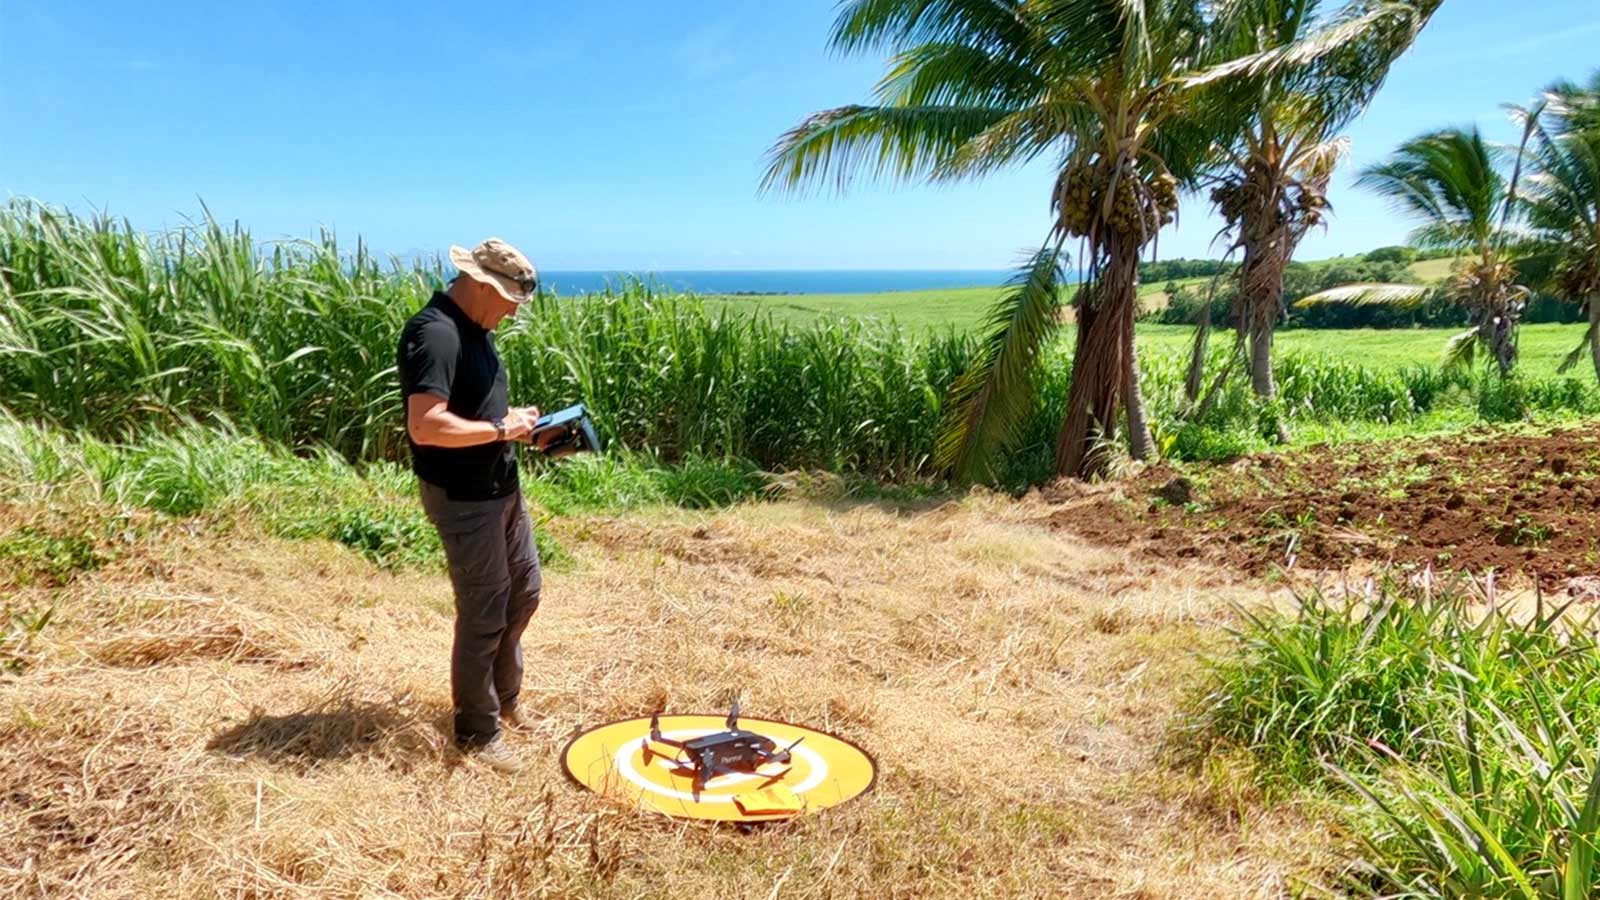 Flying Parrot Bluegrass drone over sugarcane crops in Réunion